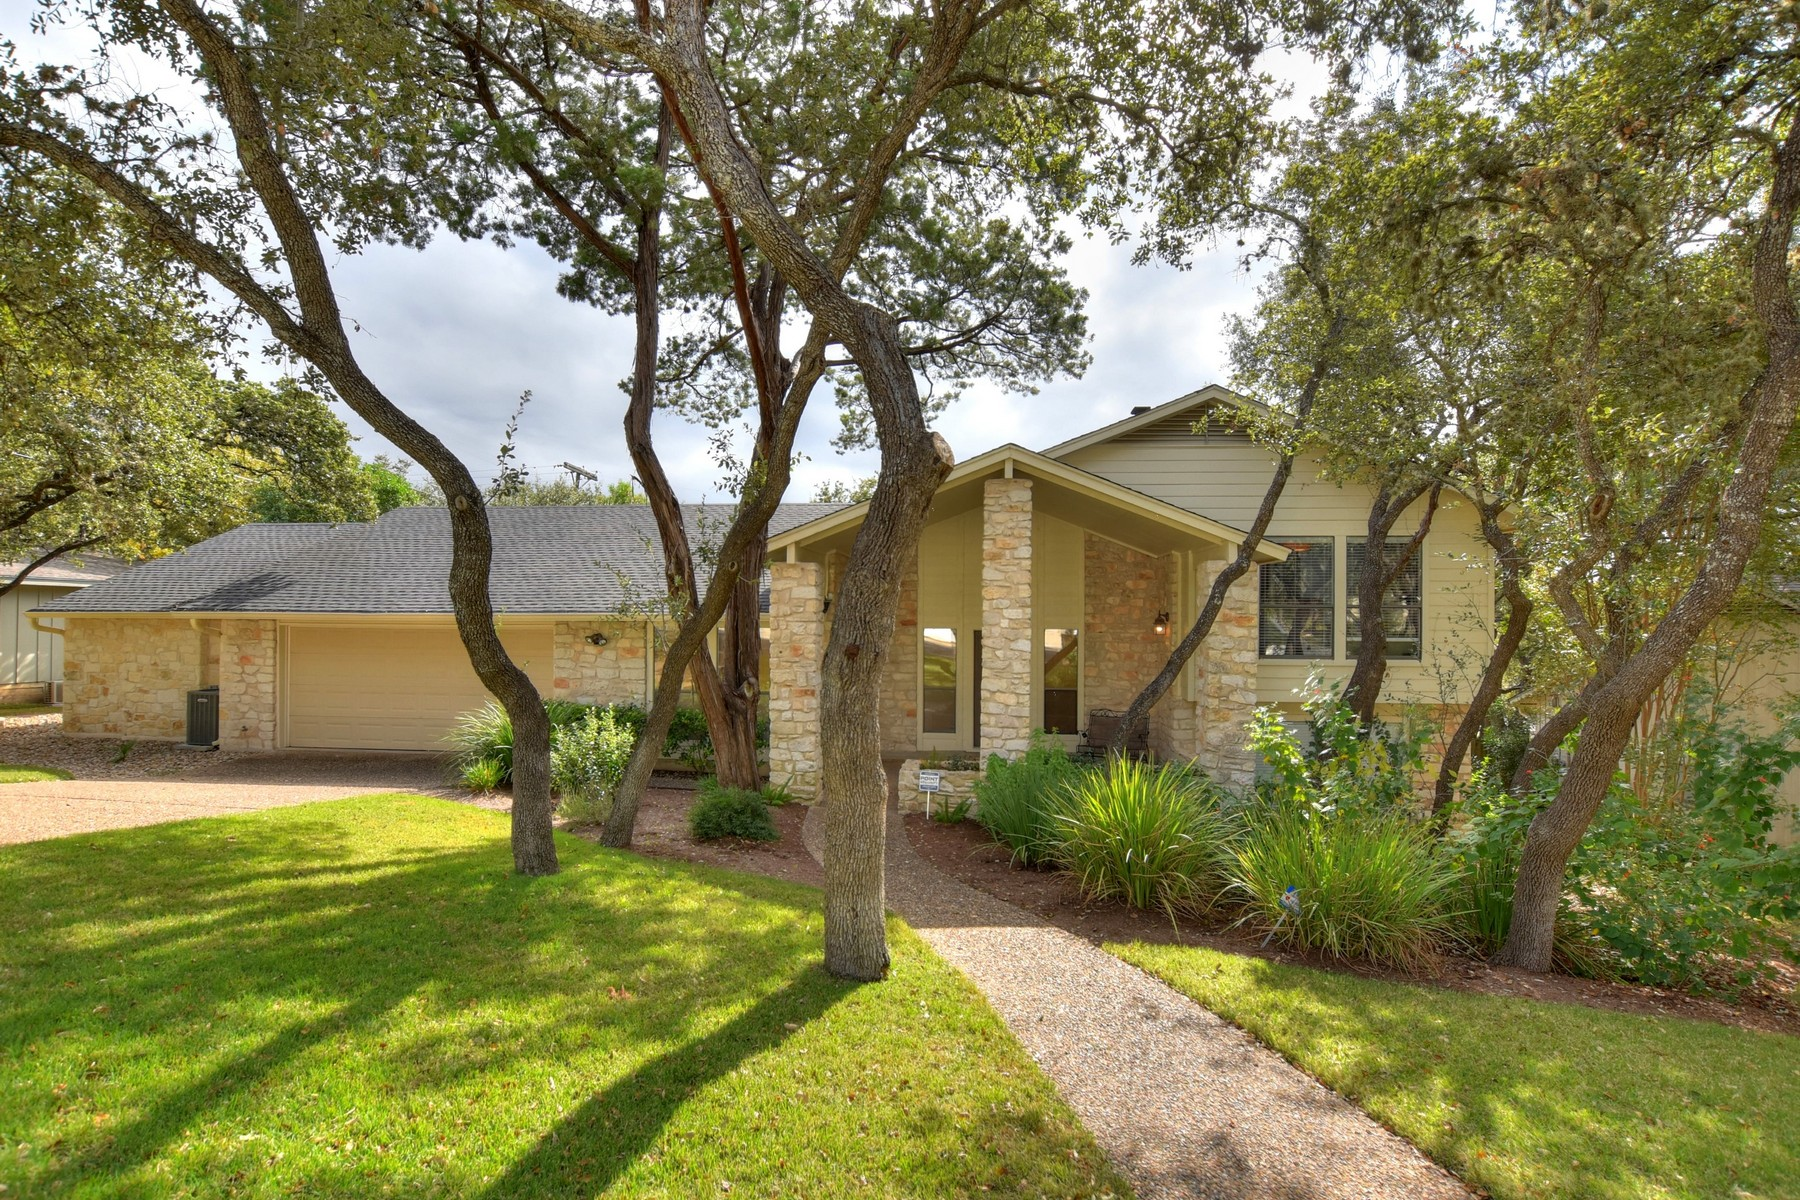 Single Family Home for Sale at Amazing Family Home in Northwest Hills 4603 Small Dr Austin, Texas 78731 United States